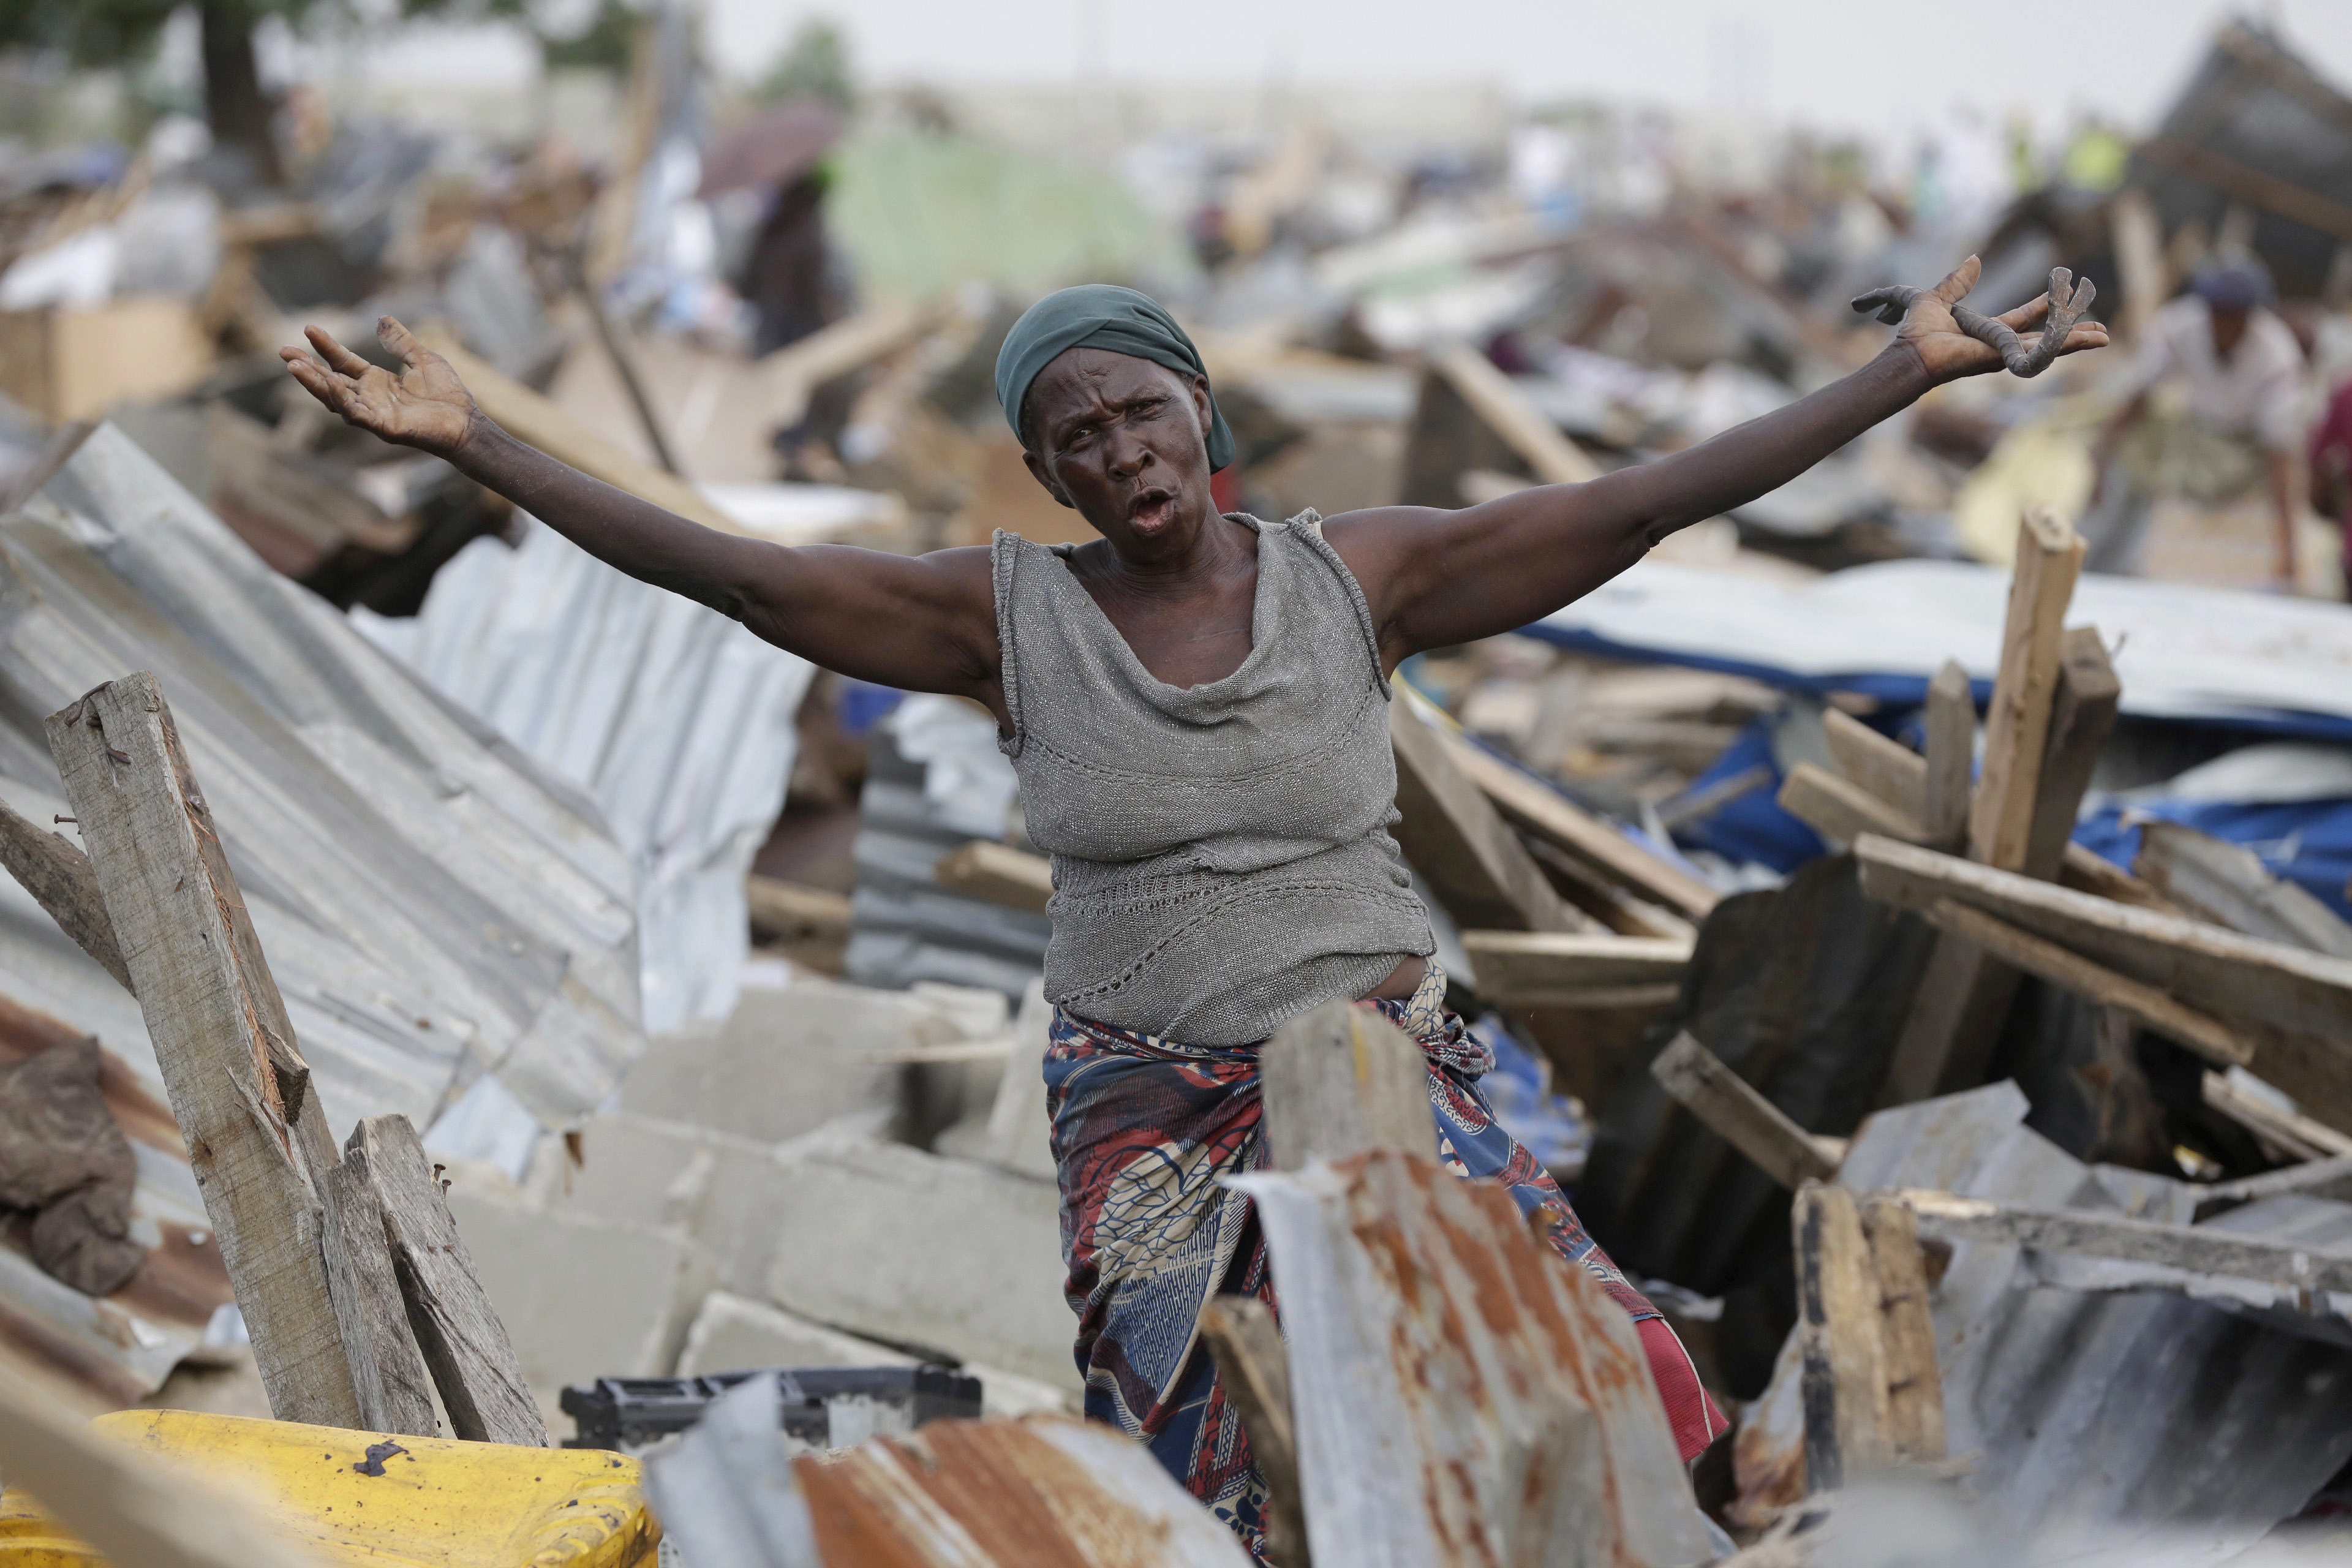 Hard Times for Lagos Slum Dwellers Caught in Race for Land - VOA News